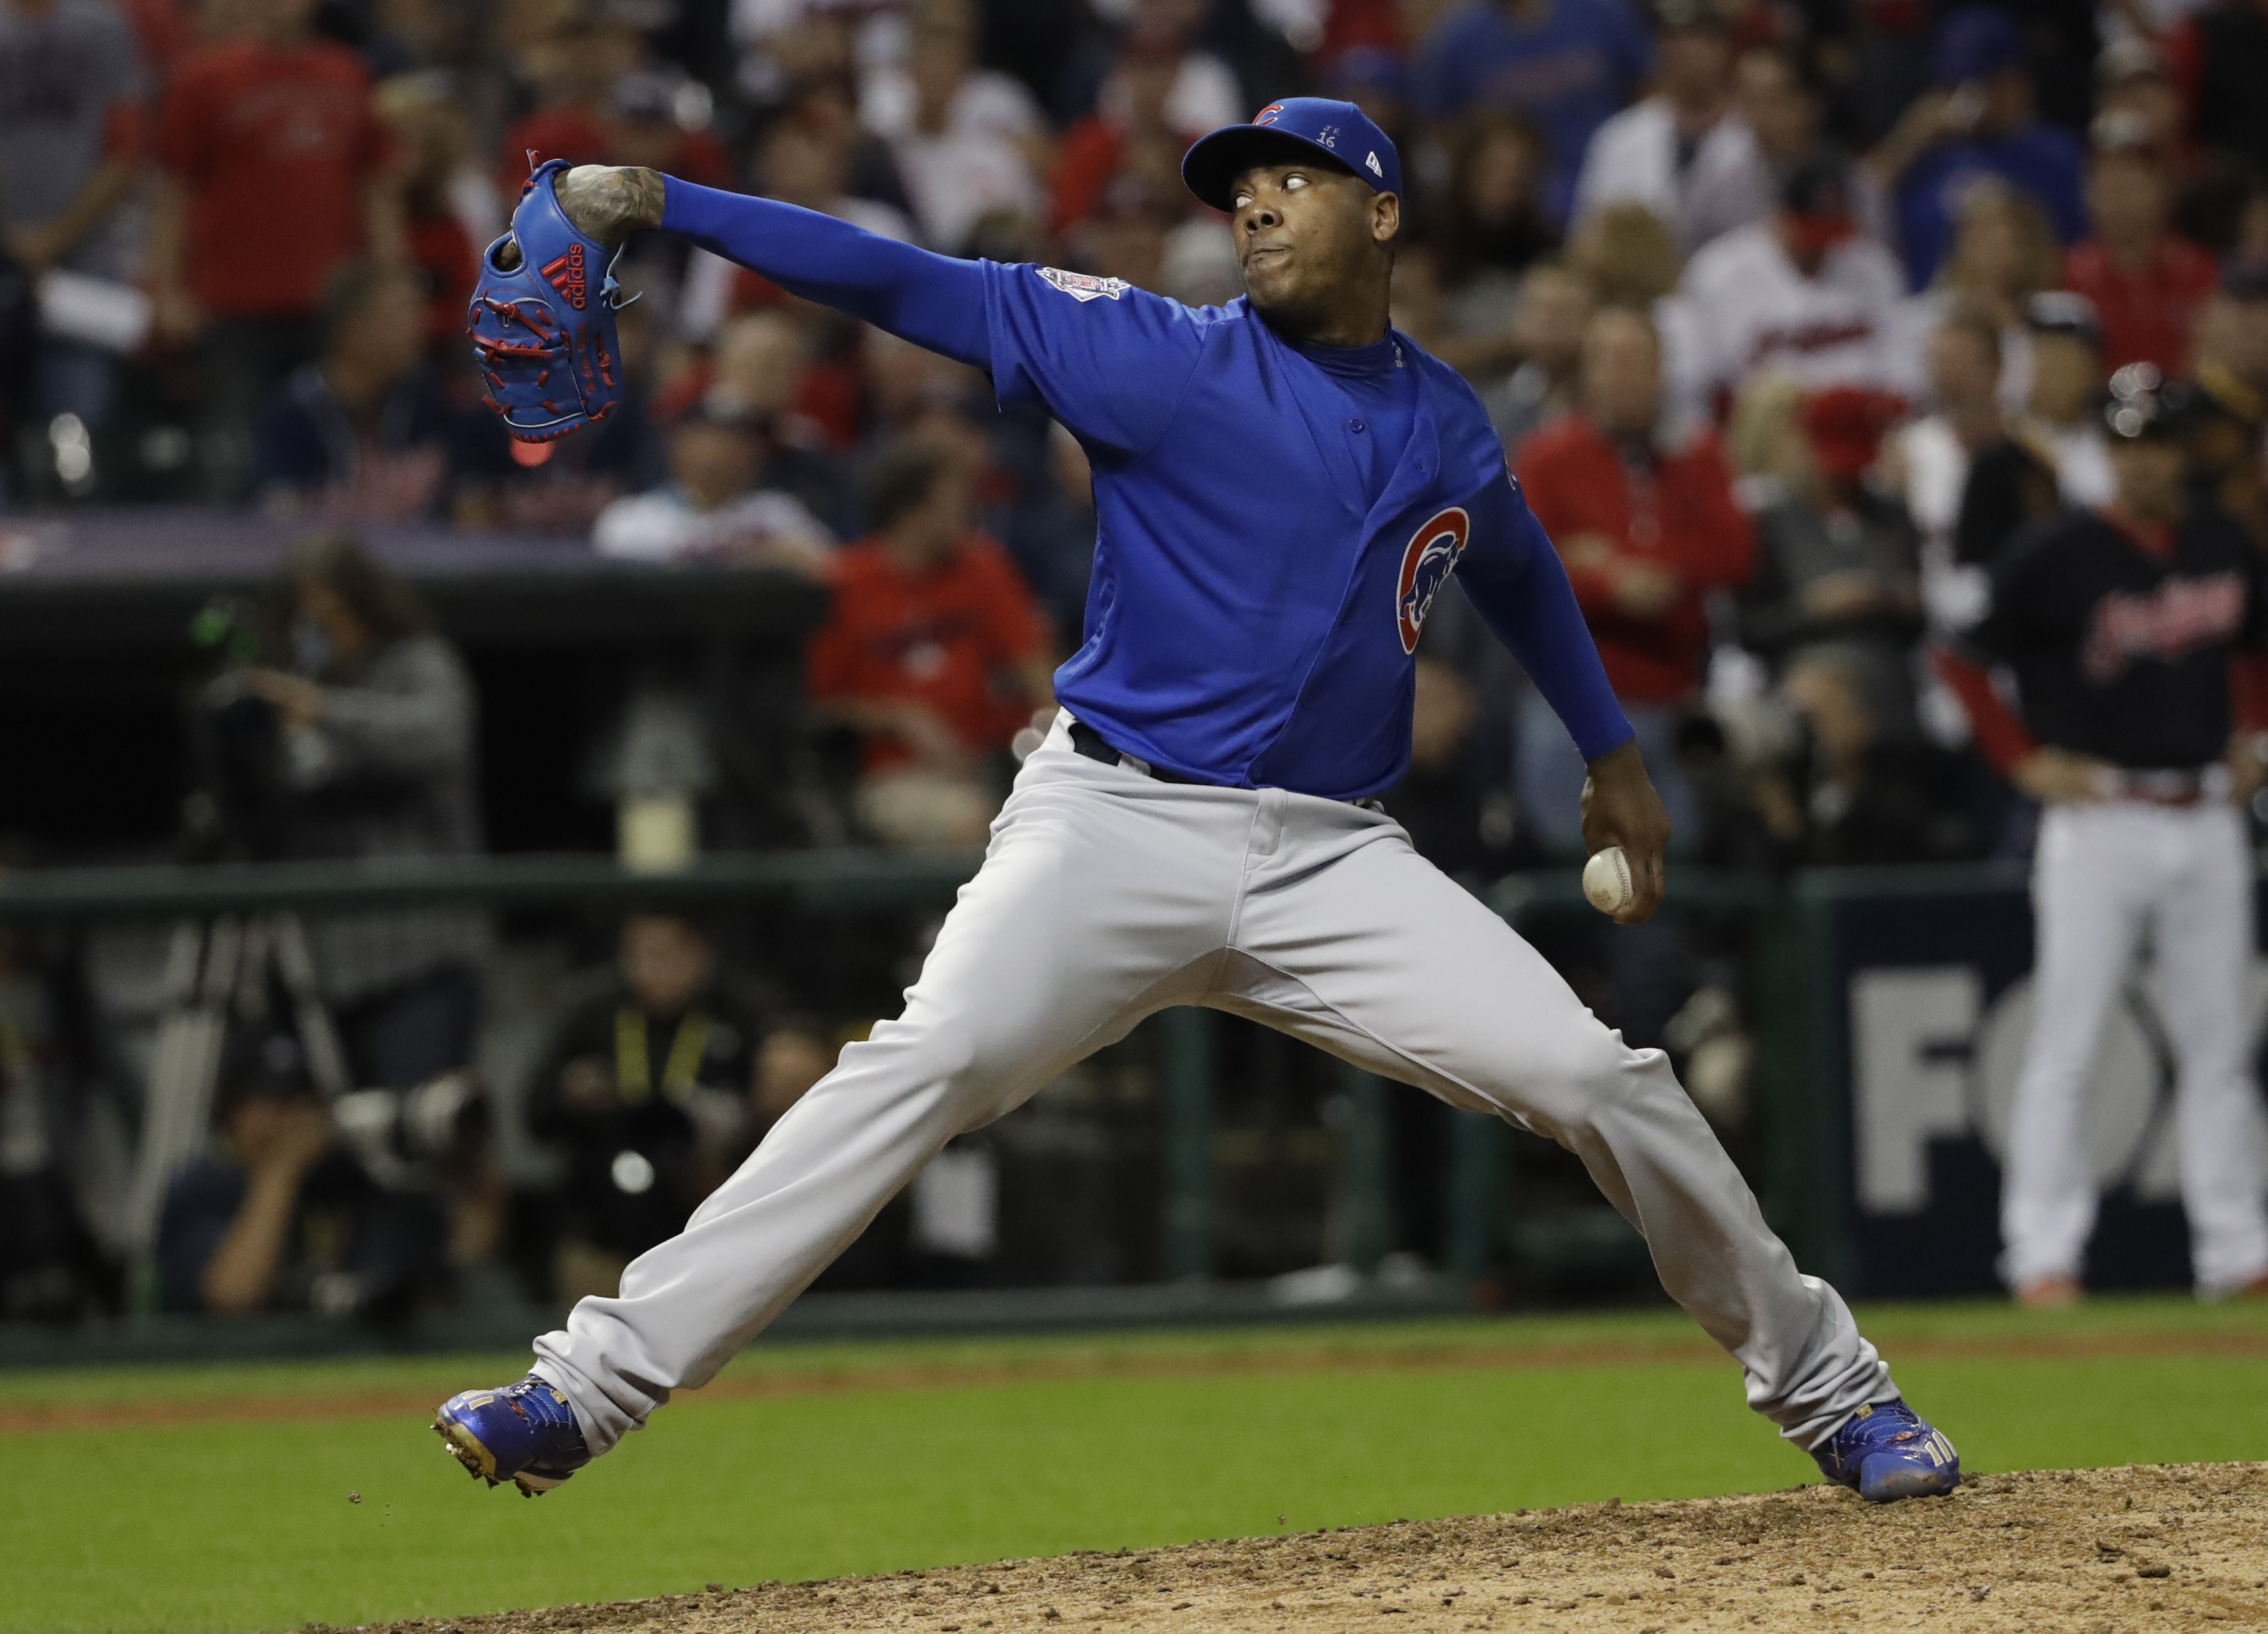 Chicago Cubs relief pitcher Aroldis Chapman throws during the eighth inning of Game 6 of the Major League Baseball World Series against the Cleveland Indians Tuesday, Nov. 1, 2016, in Cleveland. (AP Photo/David J. Phillip)